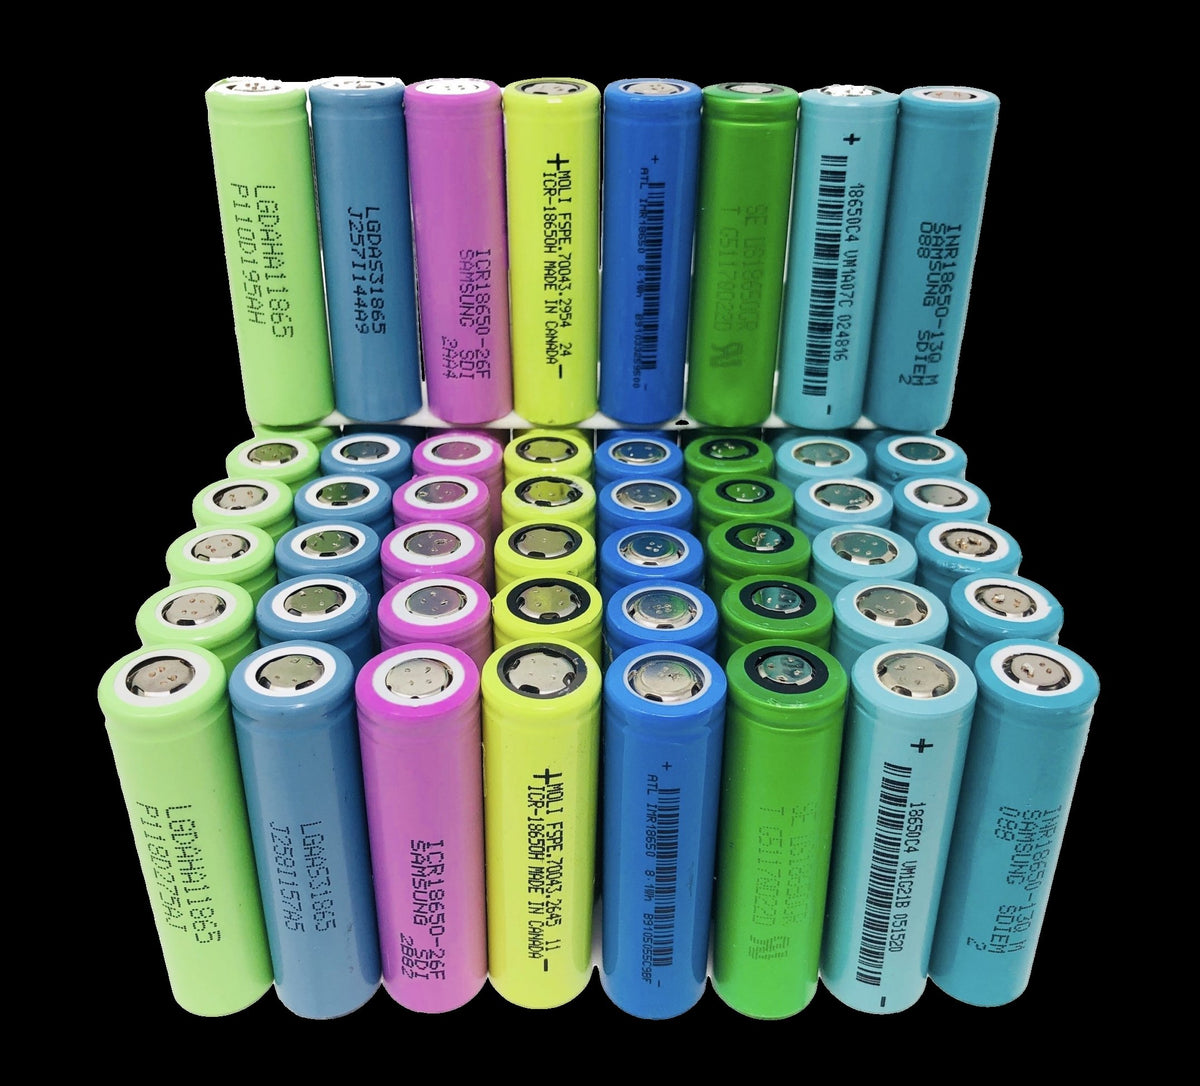 Tested 18650 Lithium Ion Capacity Cells from Modem Batteries